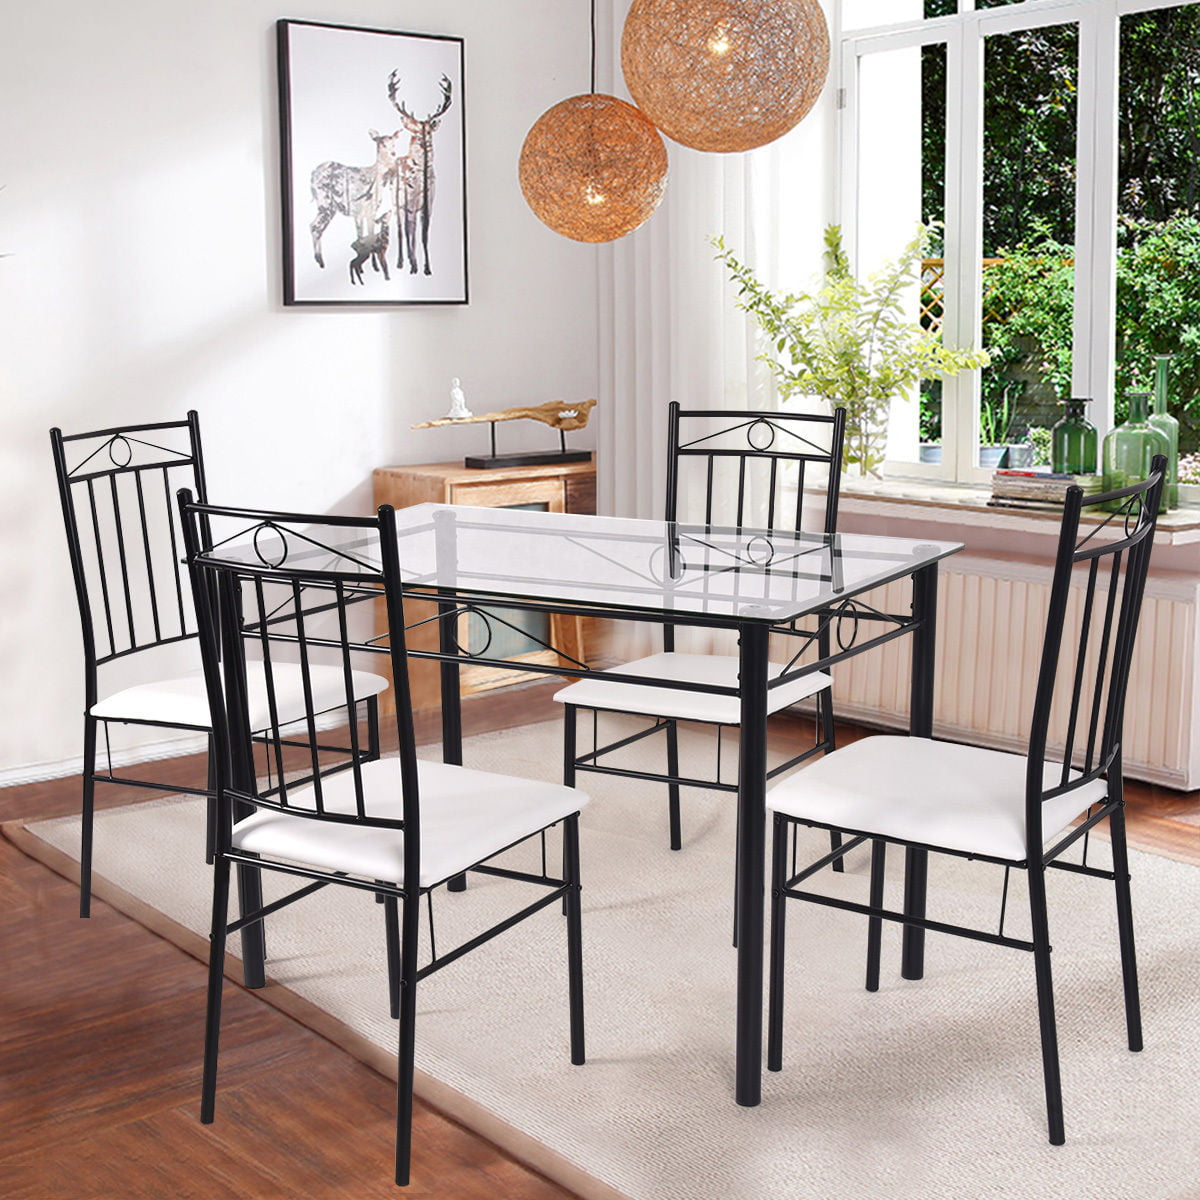 Costway 5 Piece Dining Set Glass Metal Table And 4 Chairs Kitchen Breakfast Furniture Com